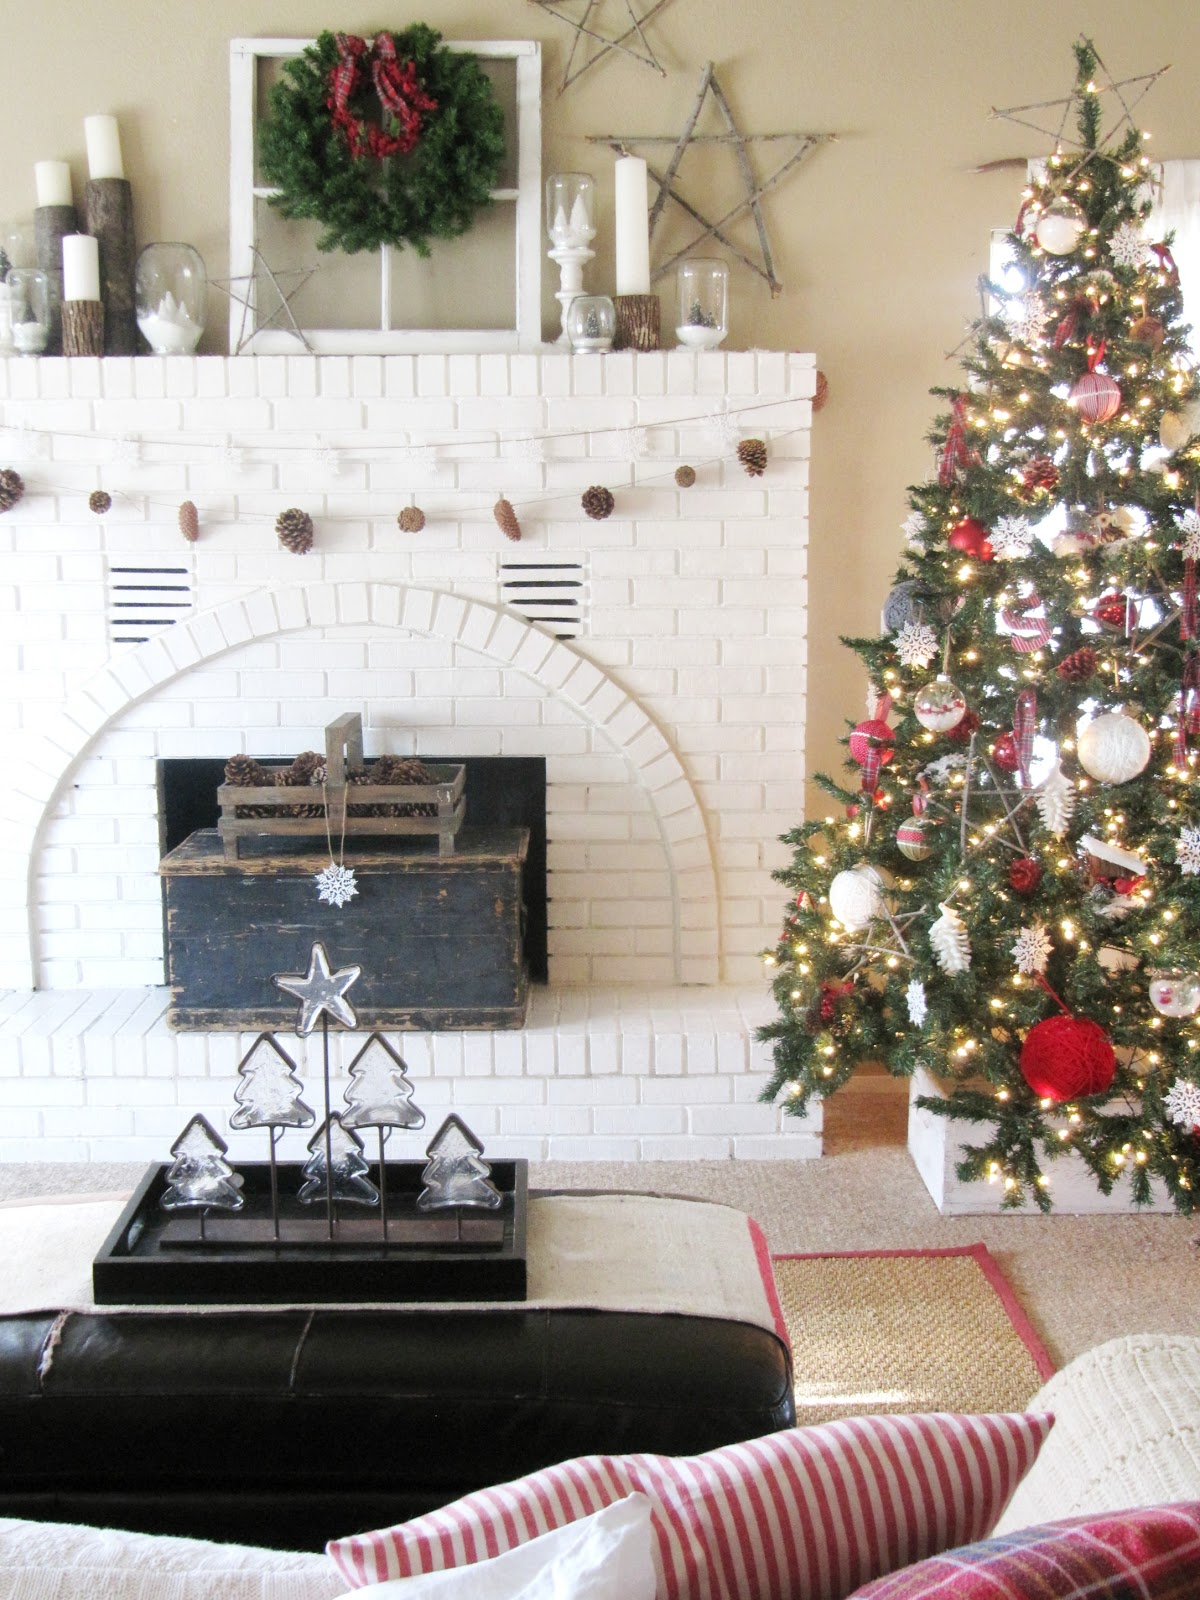 My Winter Wonderland Christmas Mantel - The Wicker House